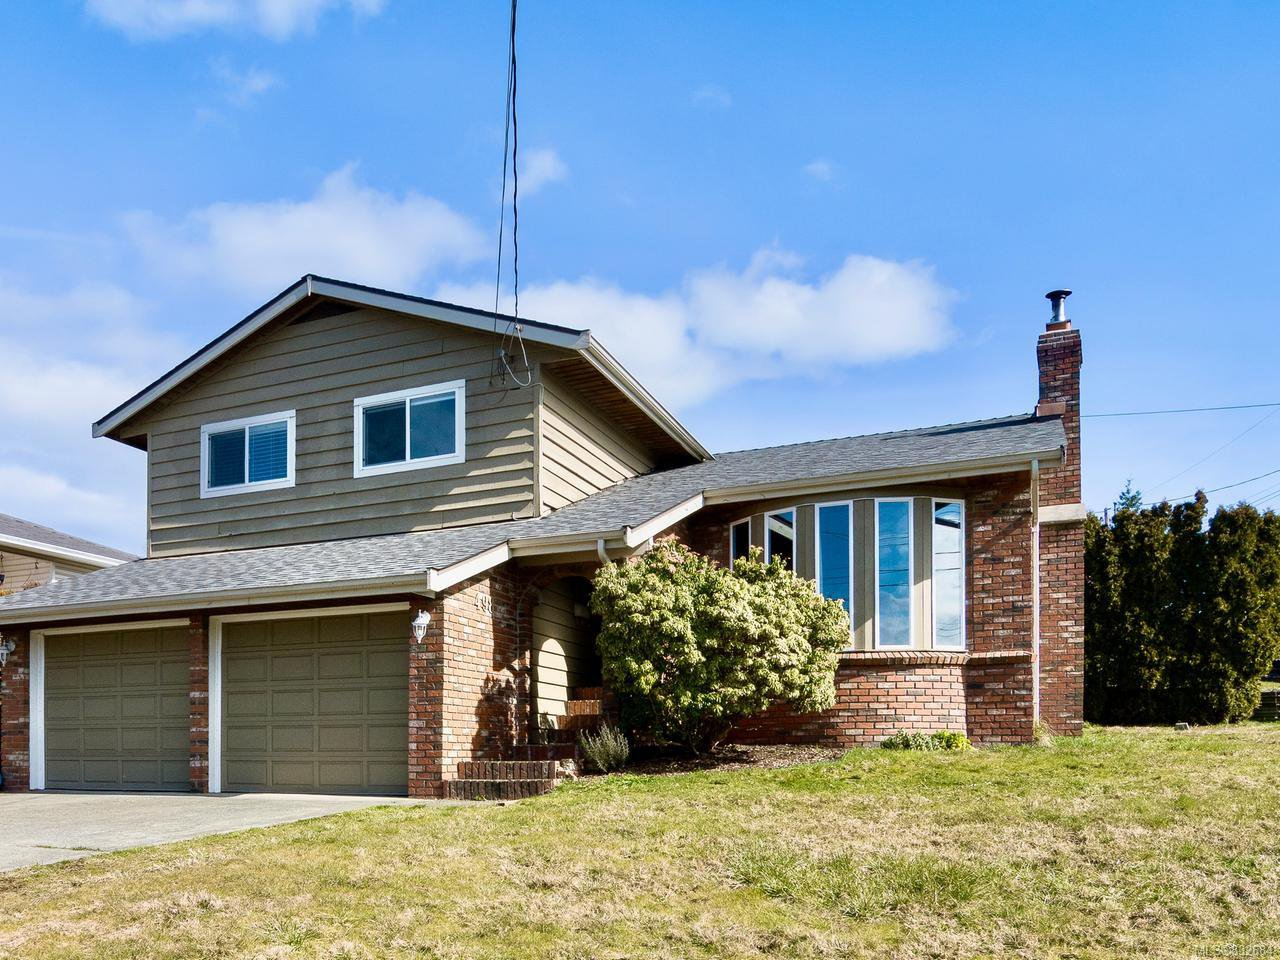 Main Photo: 498 Quadra Ave in CAMPBELL RIVER: CR Campbell River Central House for sale (Campbell River)  : MLS®# 832684